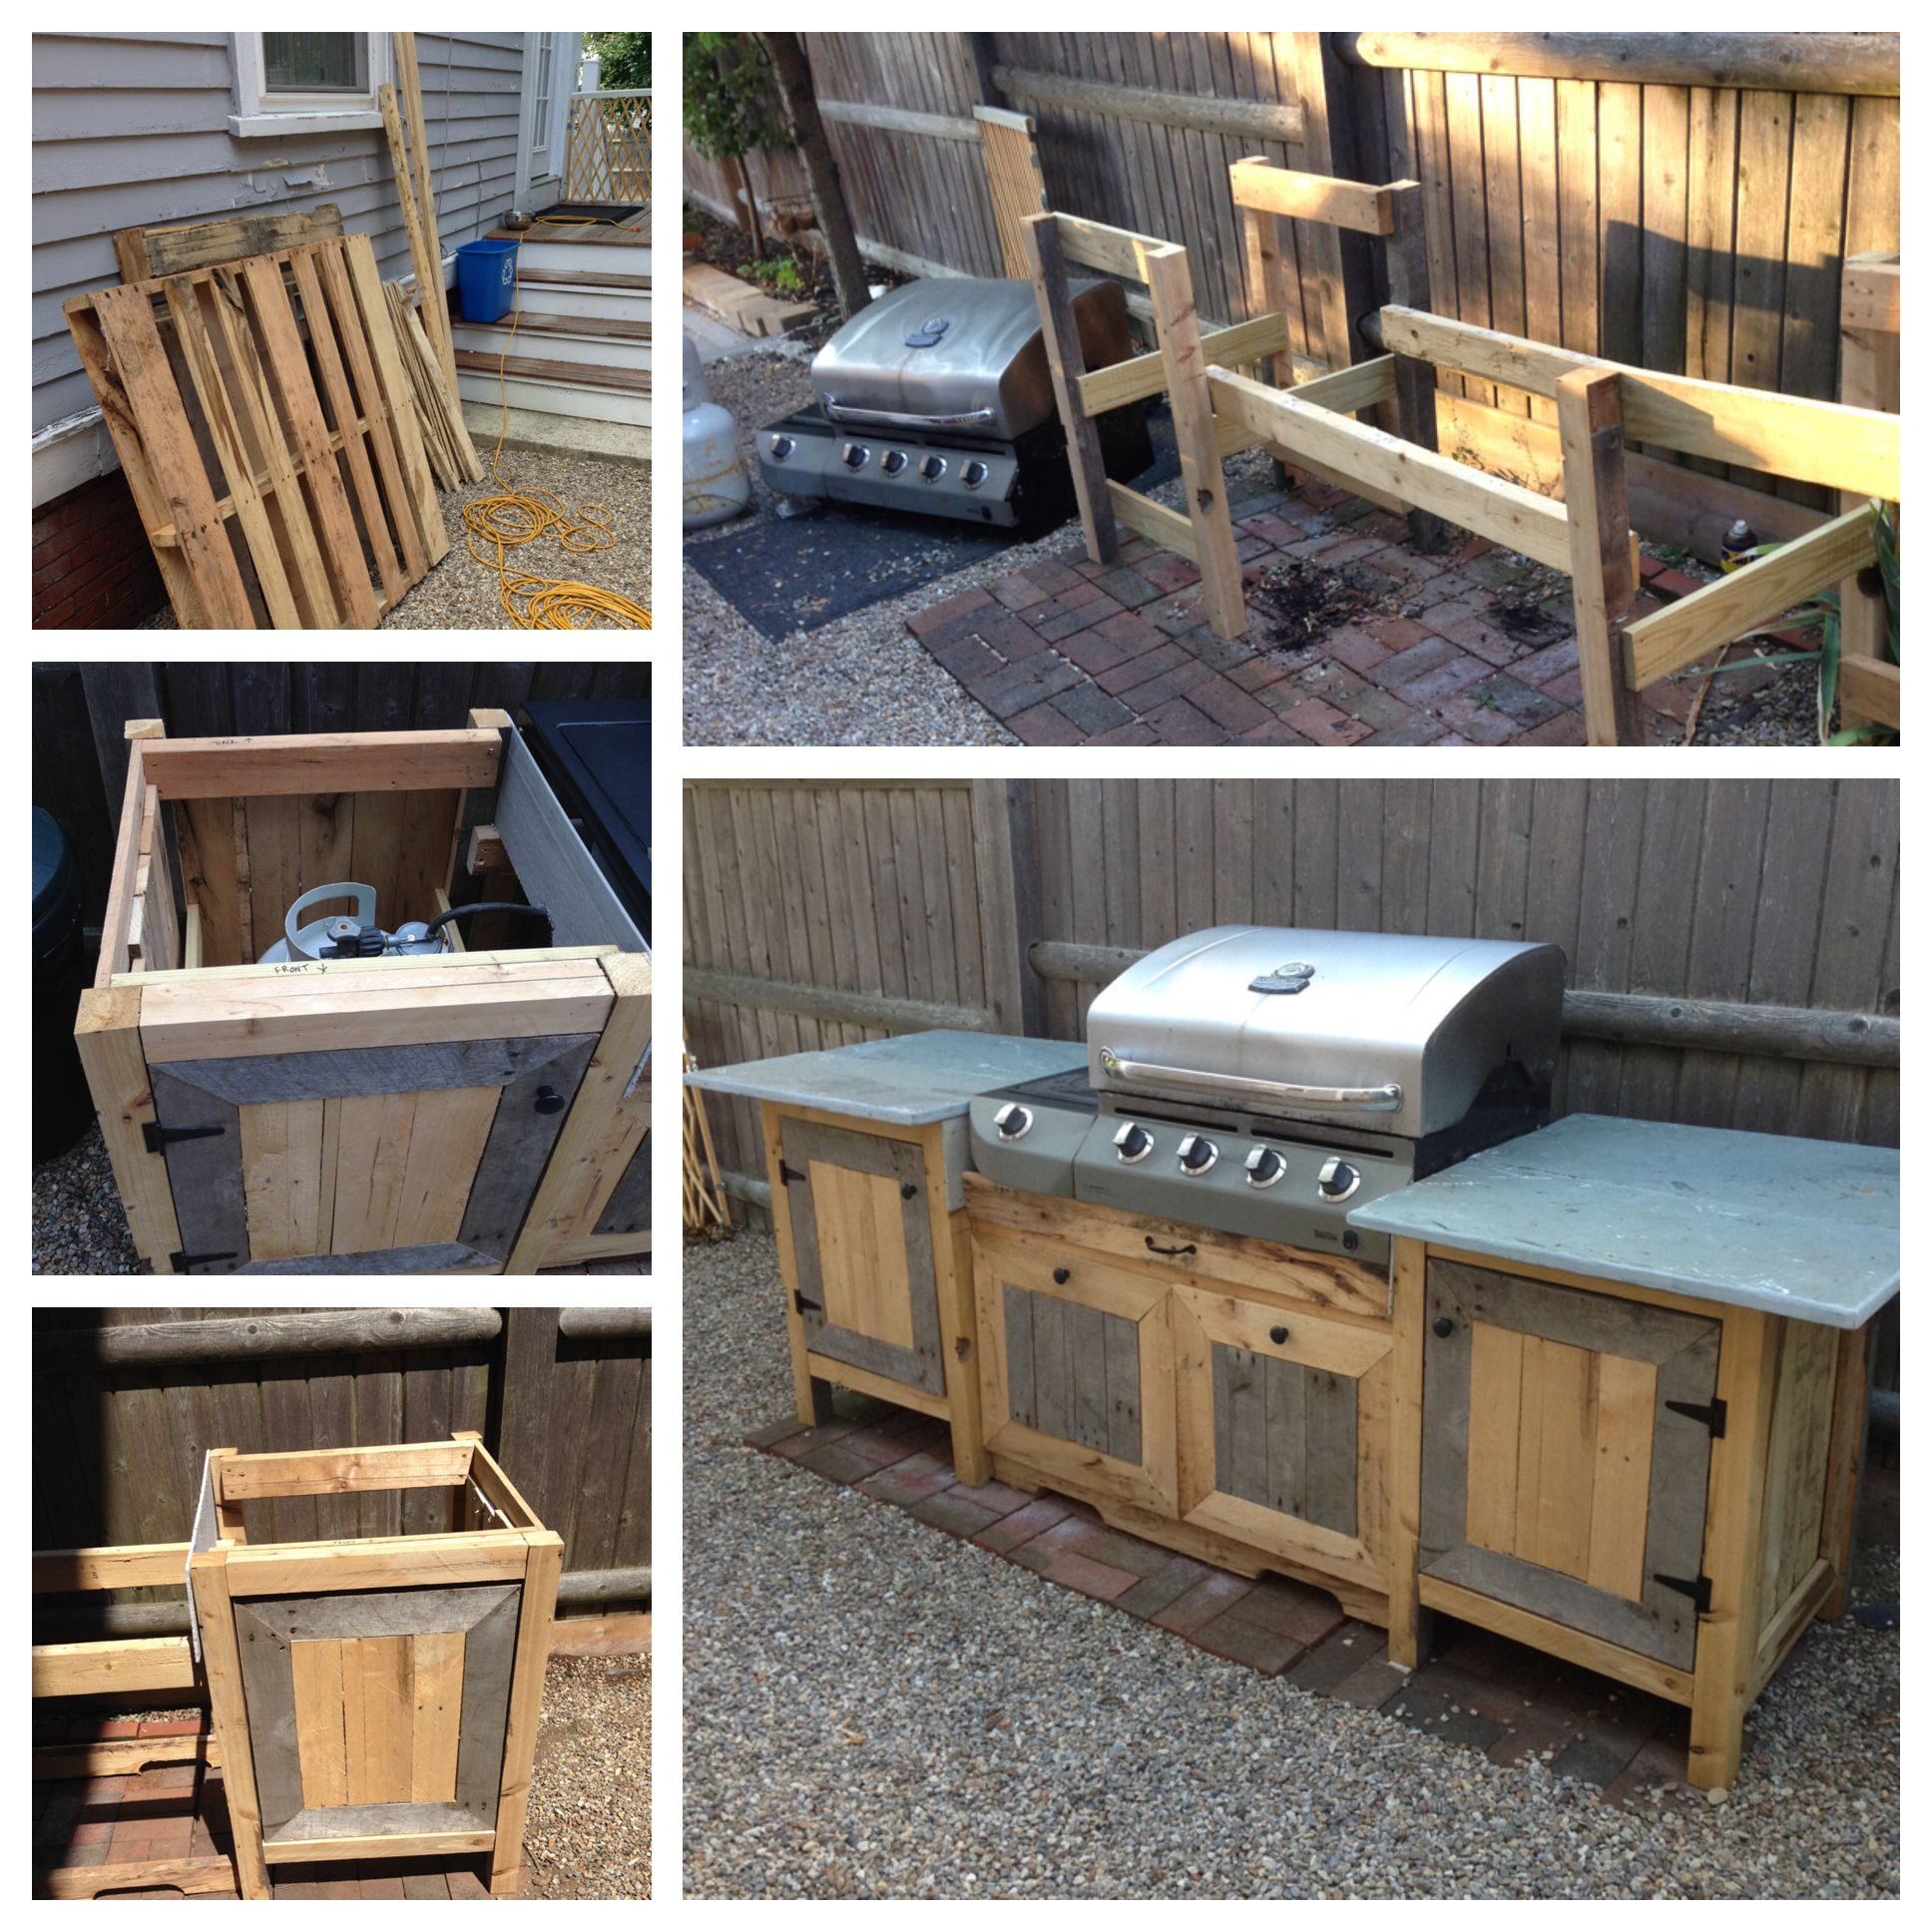 30 Outdoor Kitchens And Grilling Stations: Outdoor Kitchen Made From Pallets And Upcycled Bluestone